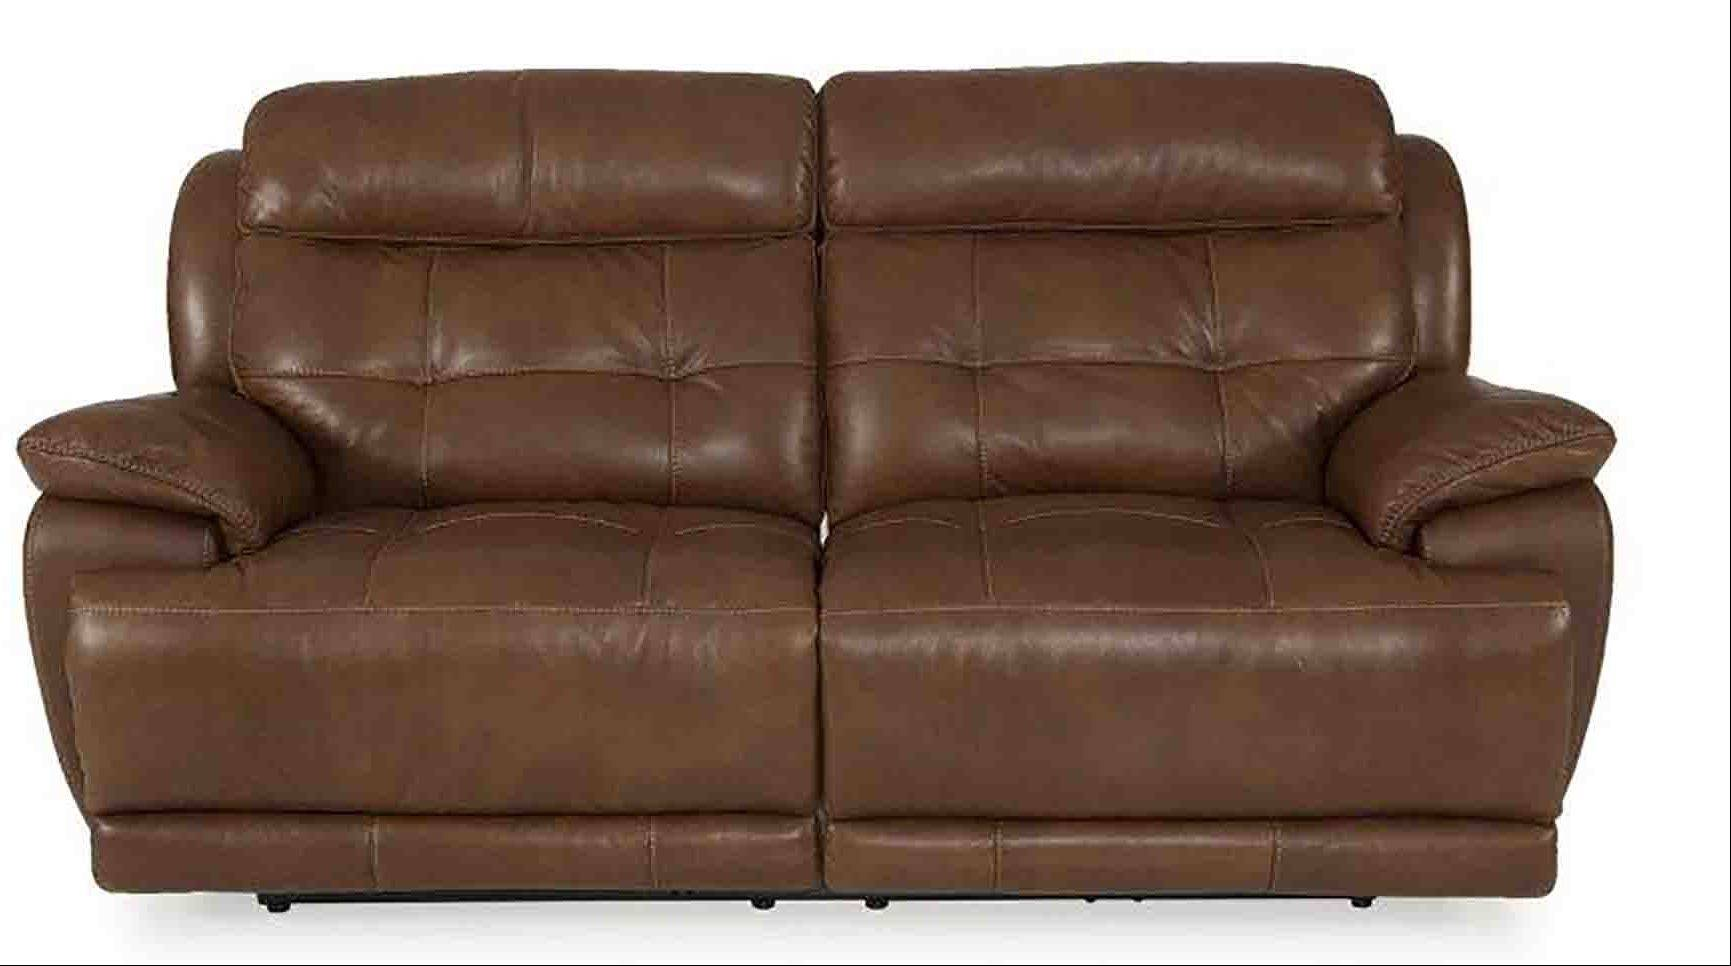 The motion sofa offers several ways to relax � as a big, comfy sofa, and as a recliner.